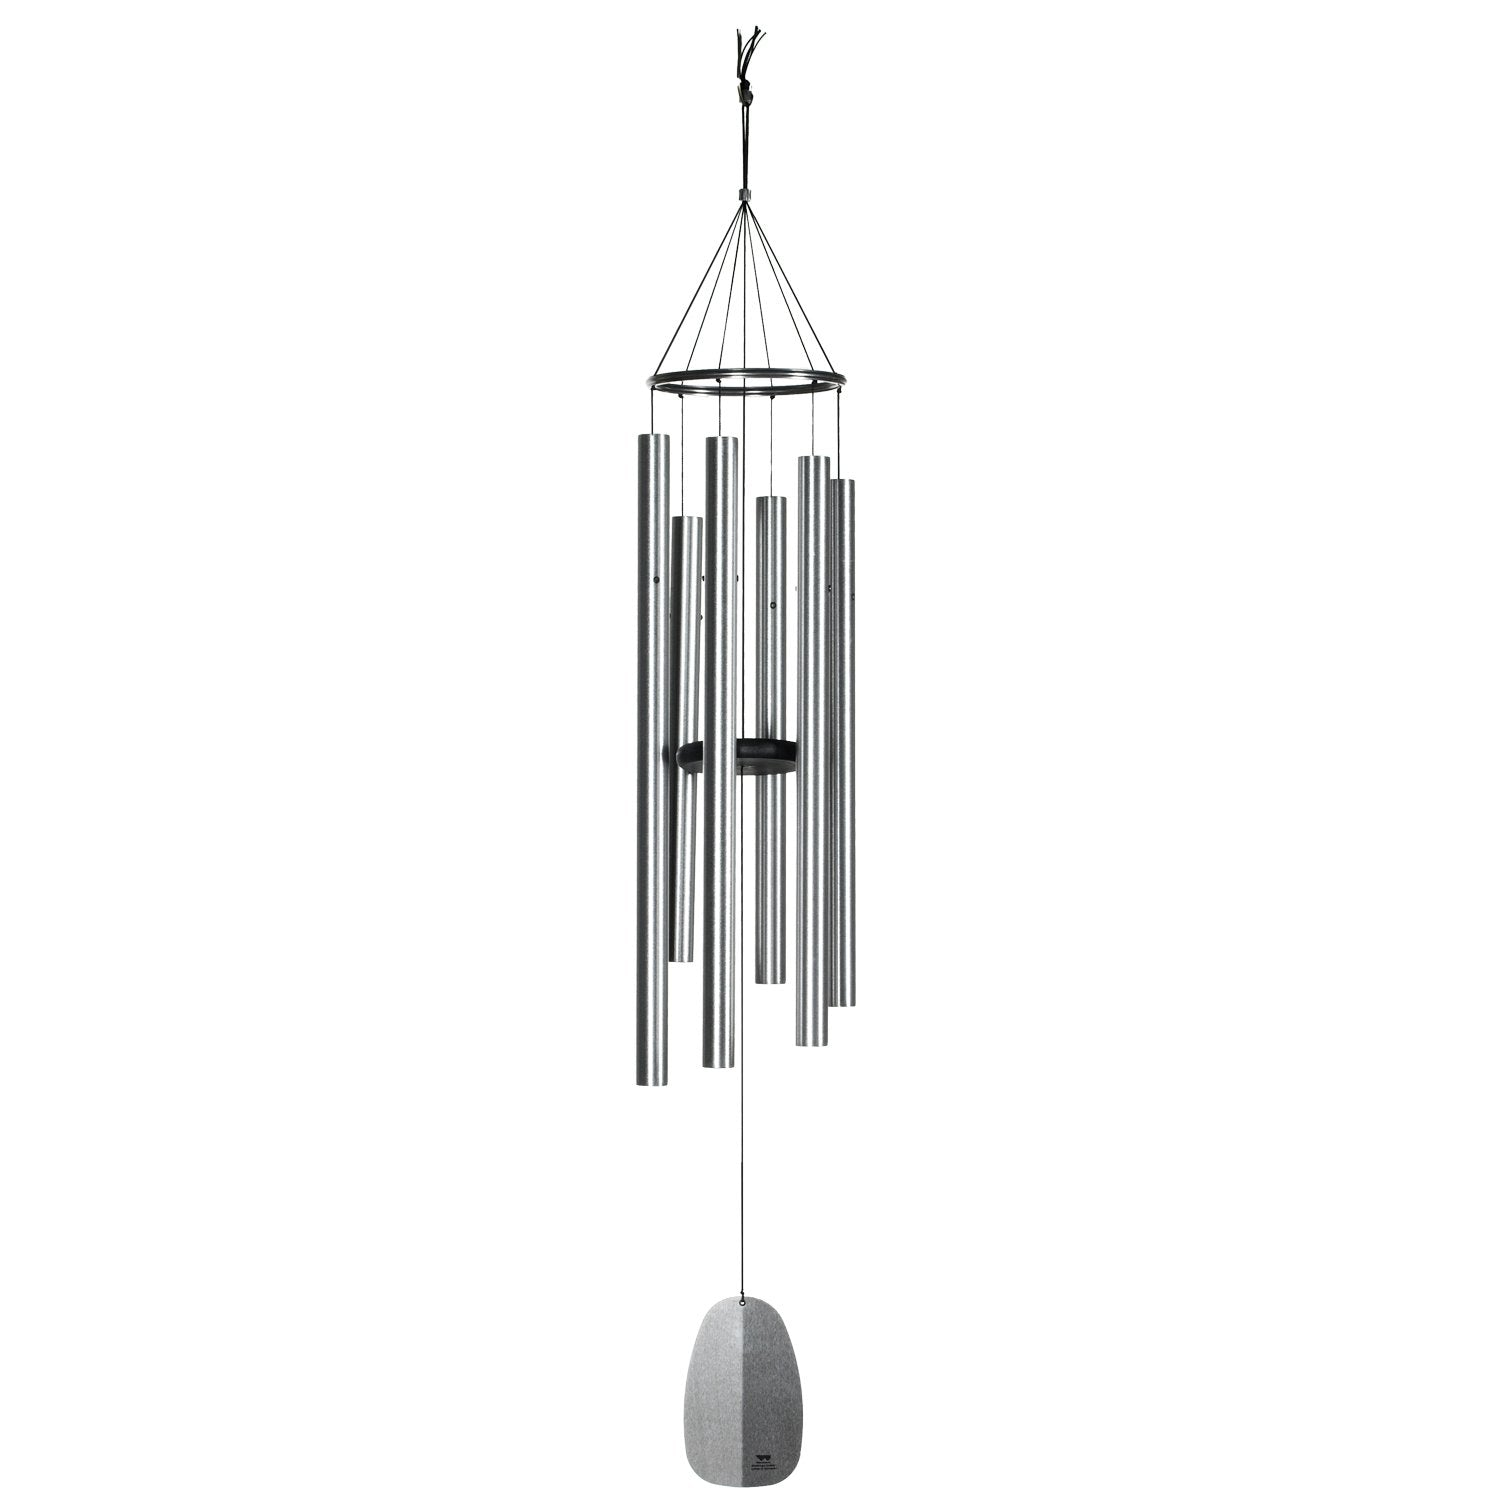 Windsinger Chimes of Orpheus - Silver full product image